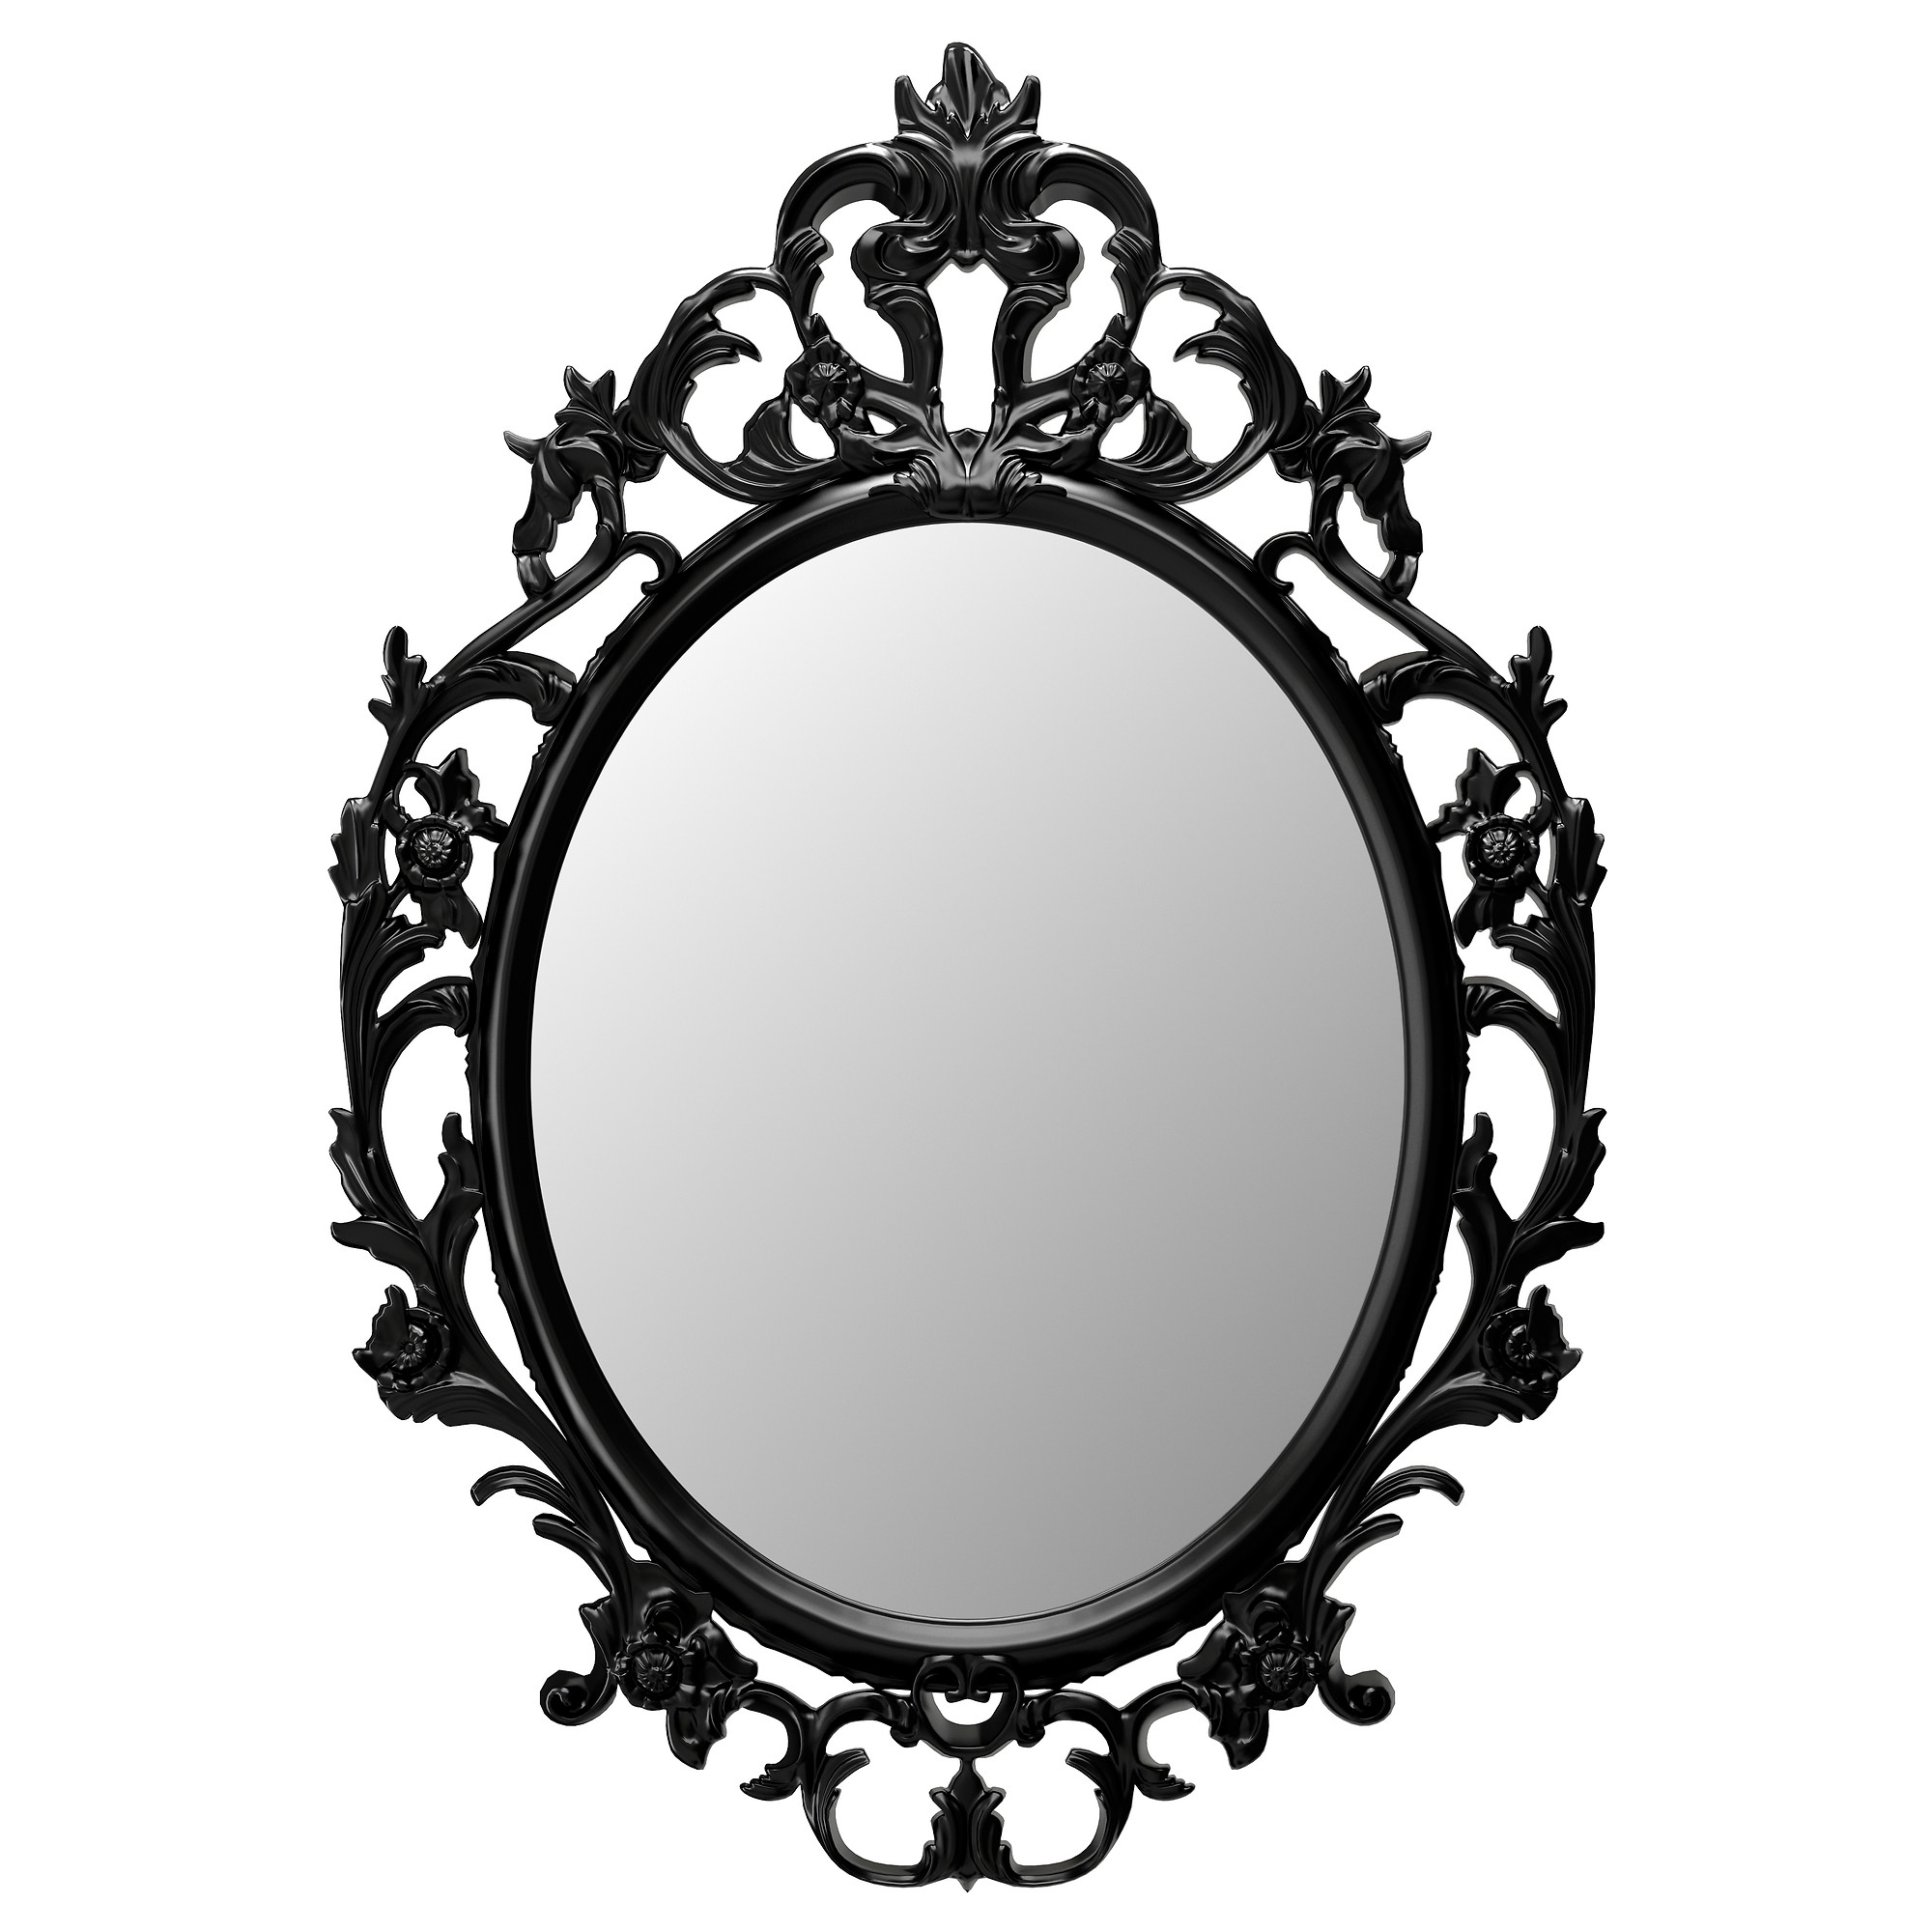 Wall Mirrors Ikea For Black Oval Wall Mirror (Image 15 of 15)